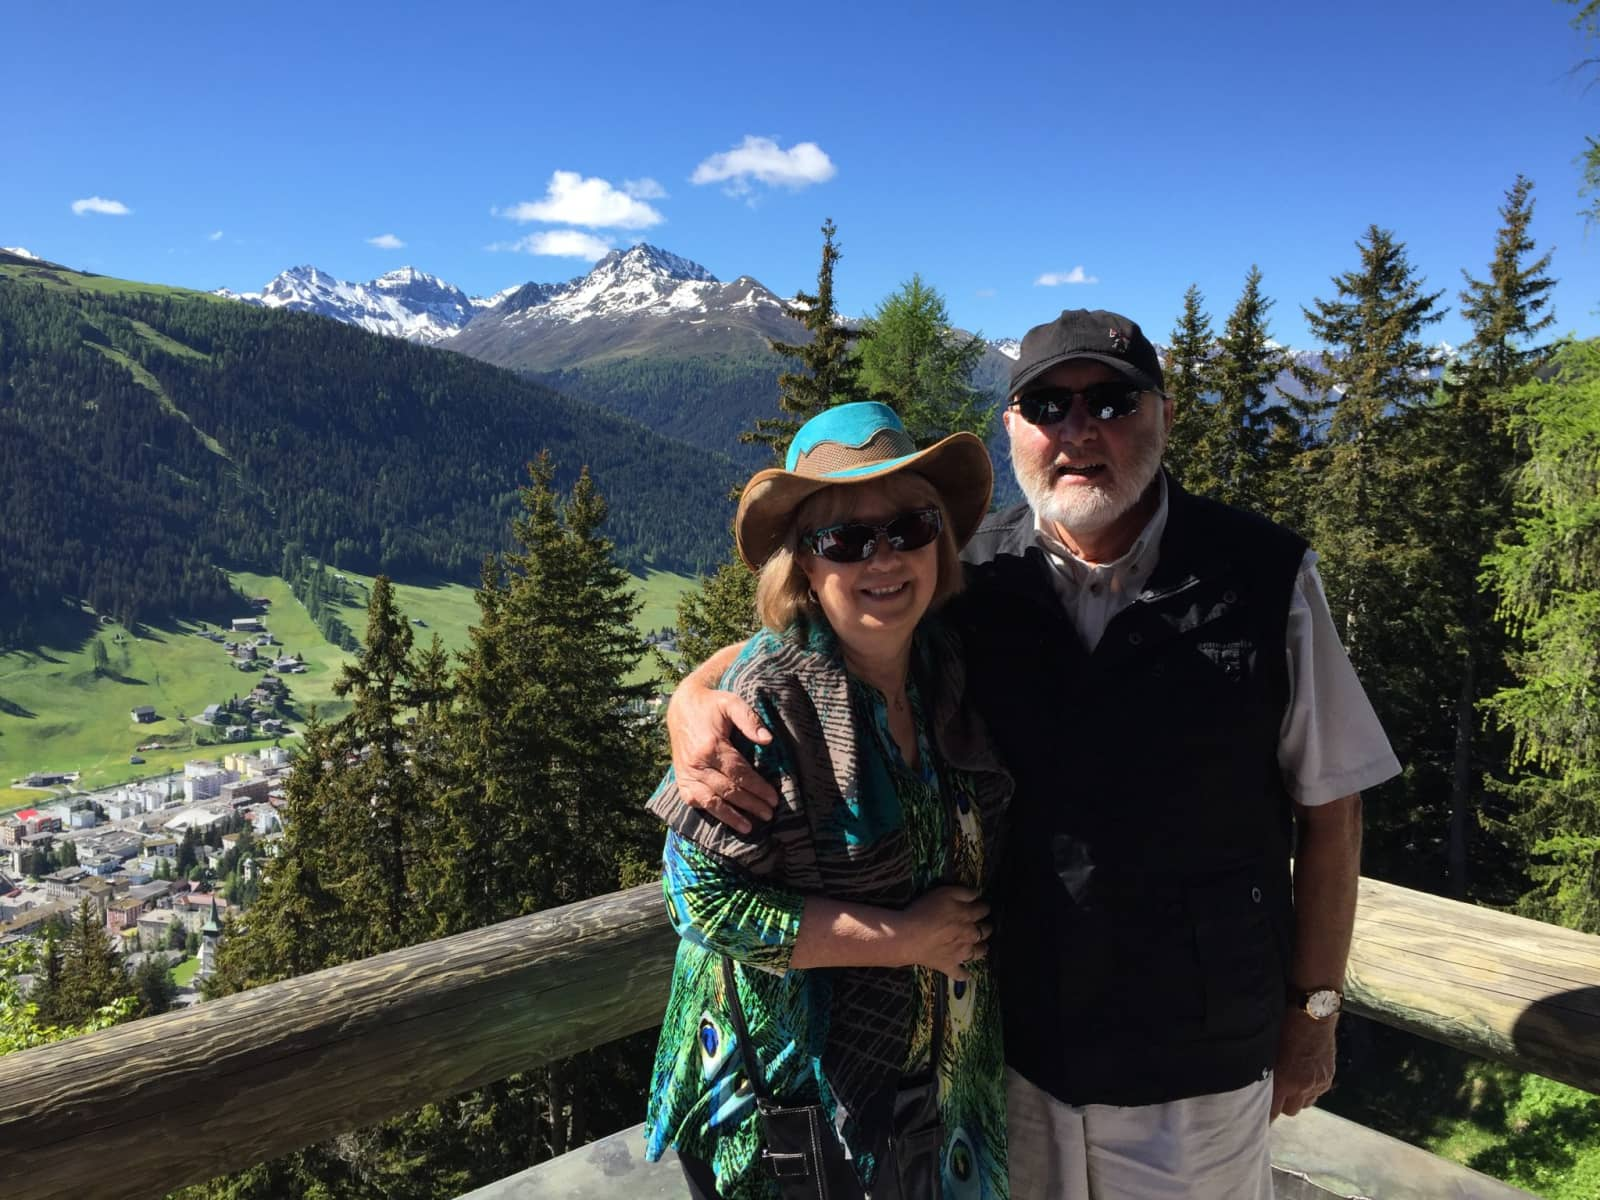 Ruth & Carl-michal from Green Valley, Arizona, United States